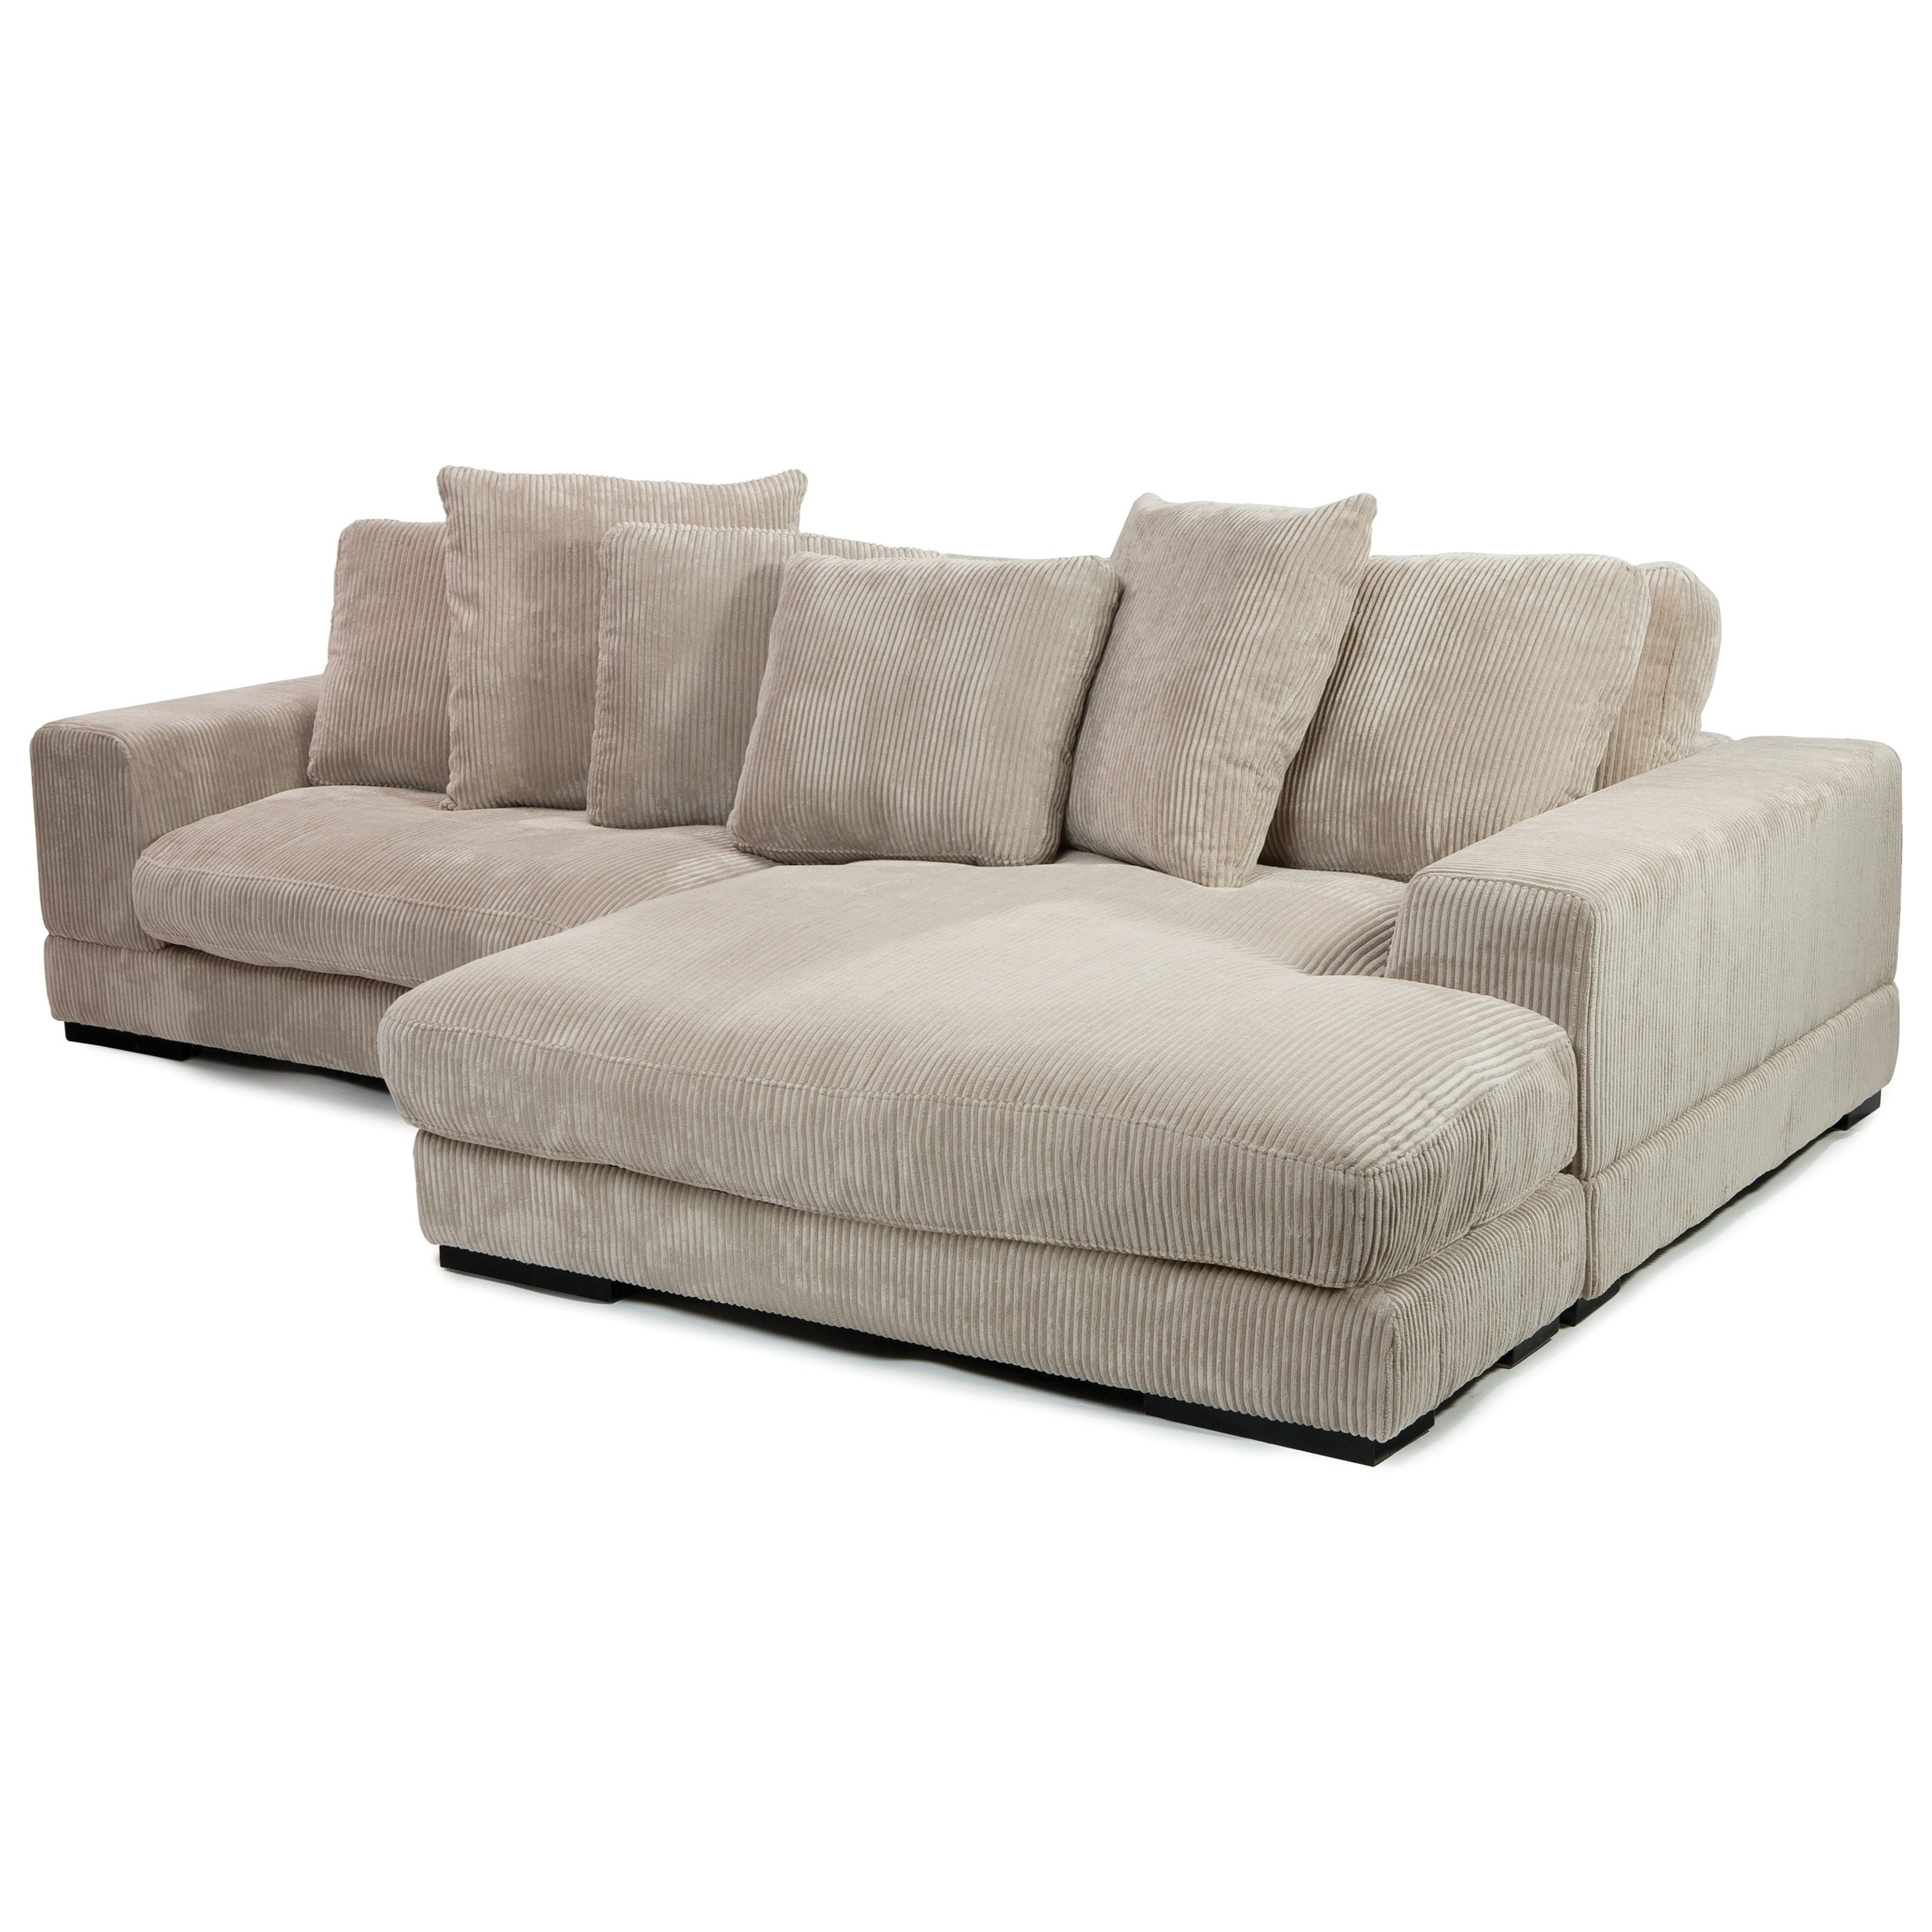 Moe's Home Collection Plunge Sectional With Flip Style Chaise With Regard To Most Up To Date Niagara Sectional Sofas (Gallery 10 of 20)